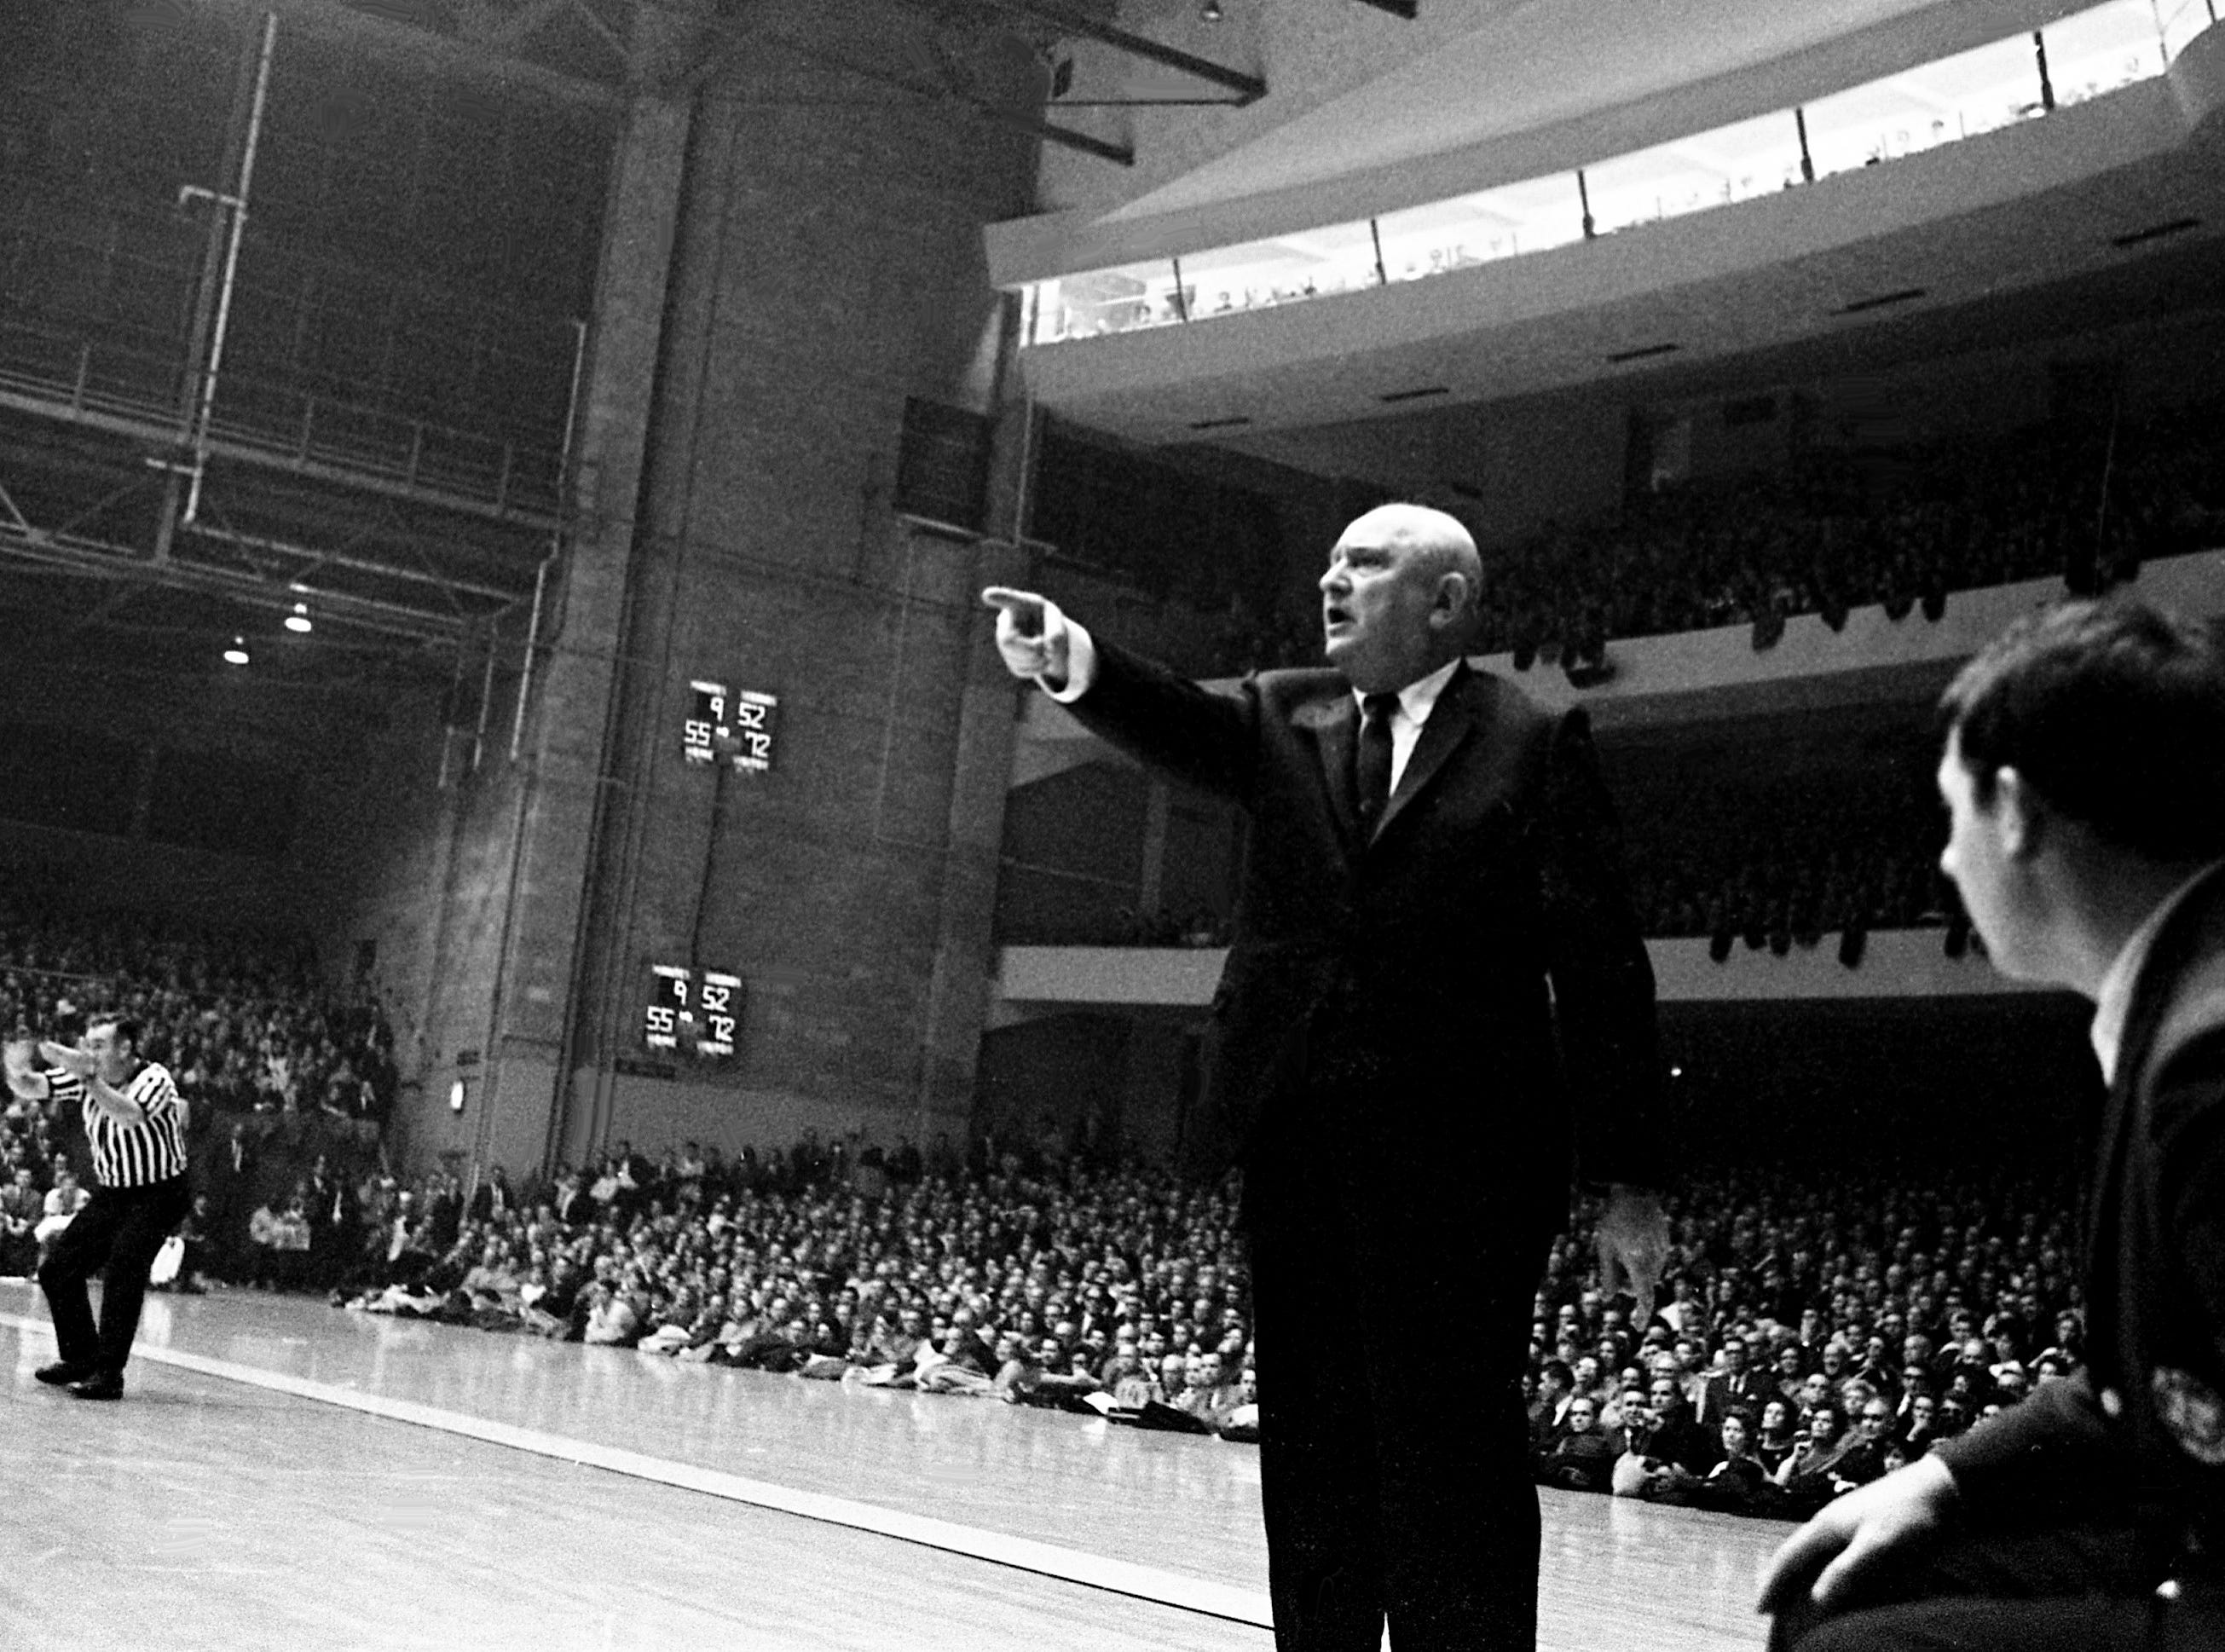 Kentucky master coach Adolph Rupp, who was given a standing ovation by the Vanderbilt crowd prior to the game, is directing his team to a 94-78 victory over the Commodores at Memorial Gym Jan. 6, 1968.